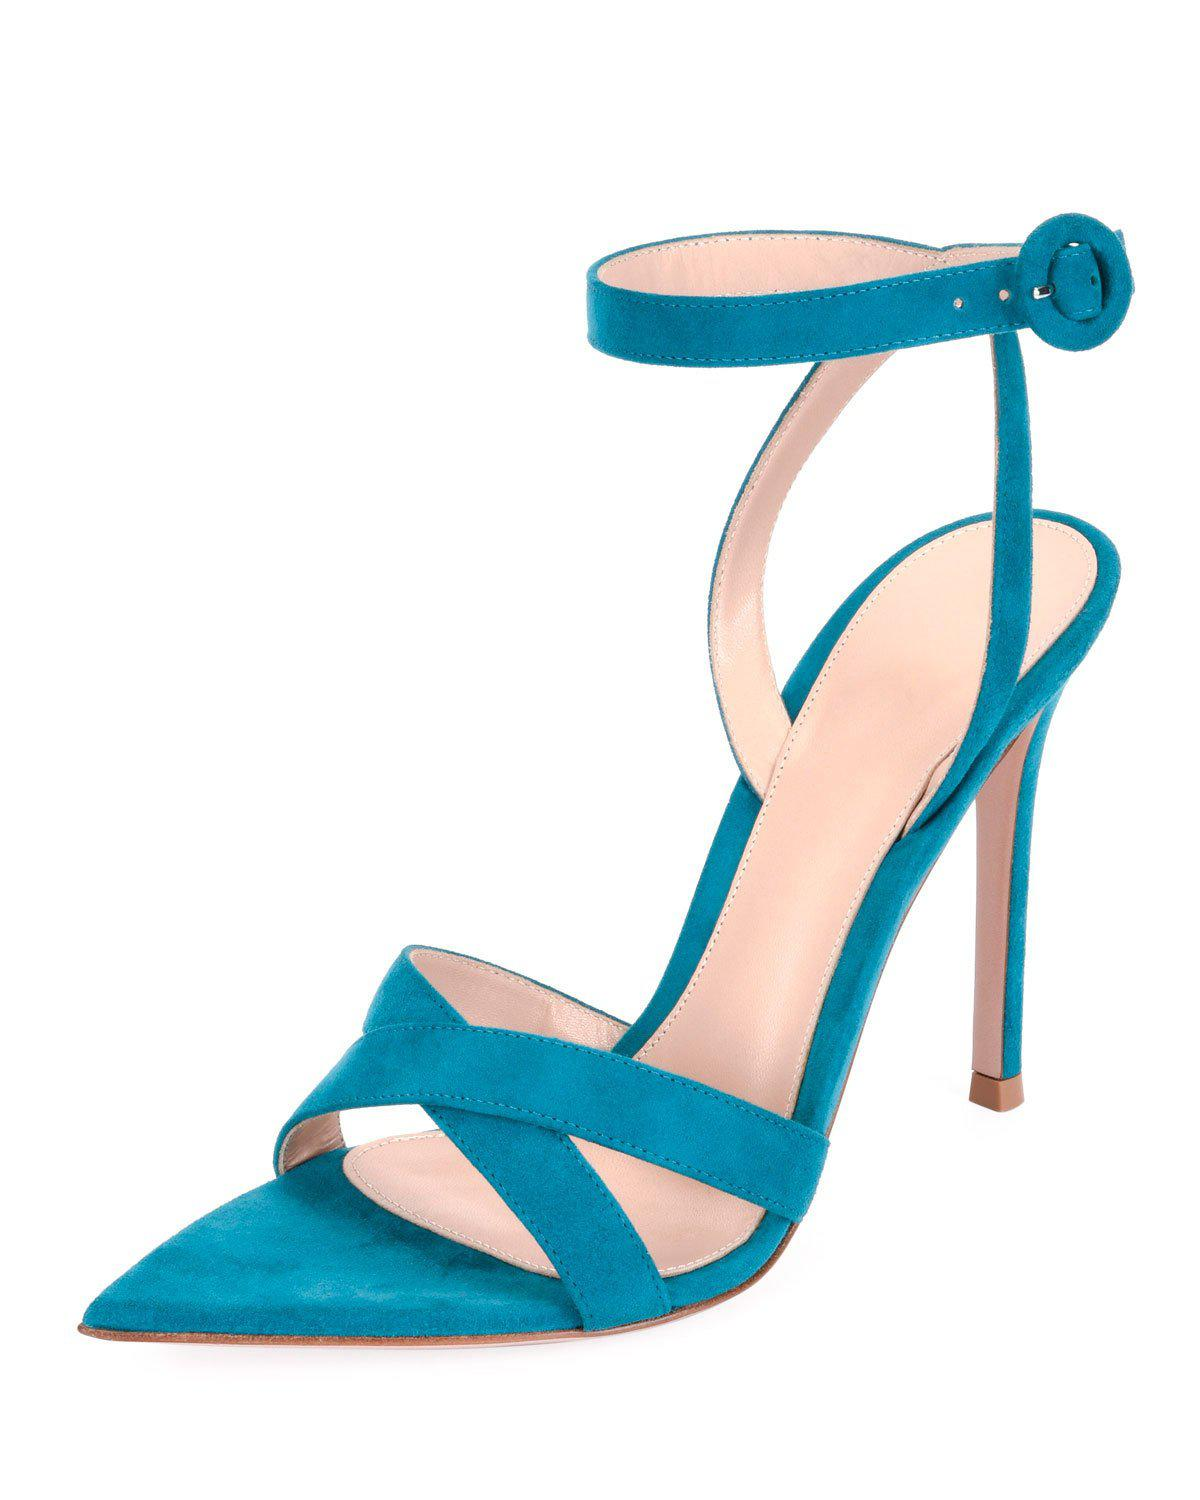 Gianvito Rossi High-Heel Suede Crisscross Ankle-Strap Sandals In Blue